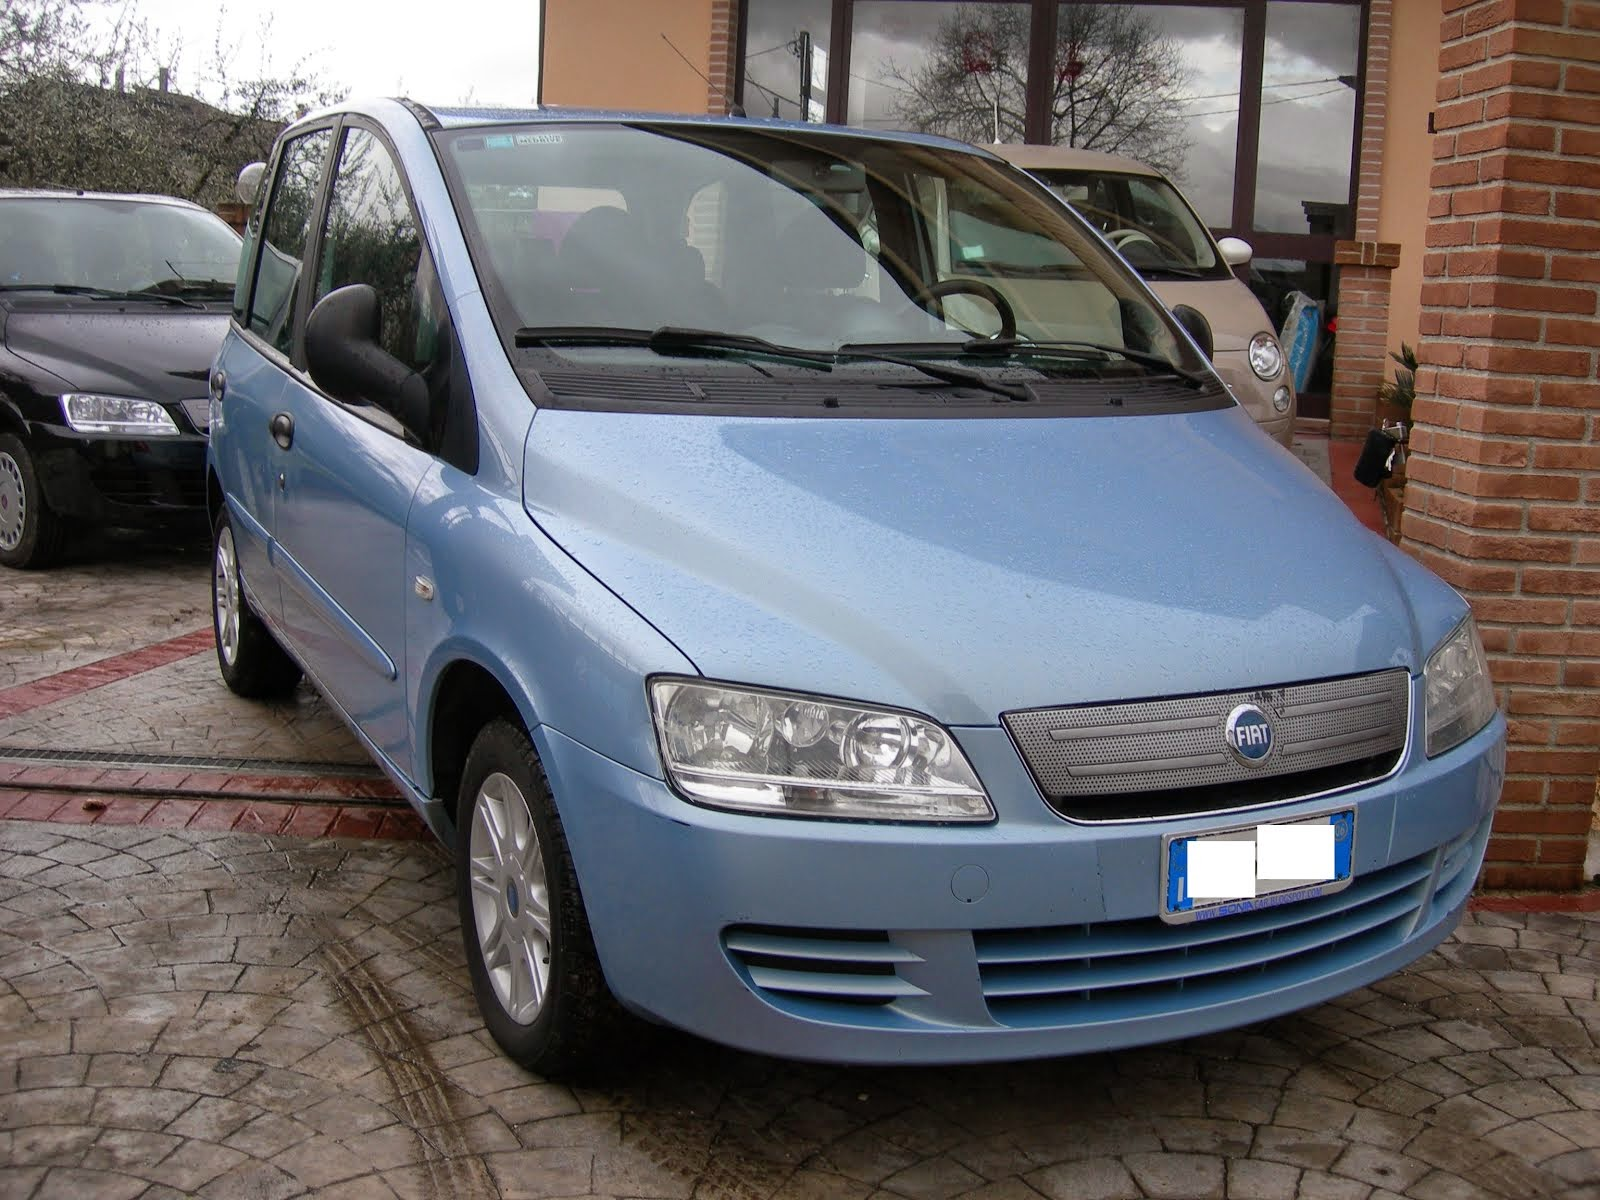 Fiat Multipla Natural Power 1.6 Metano Anno 2006 dinamyc